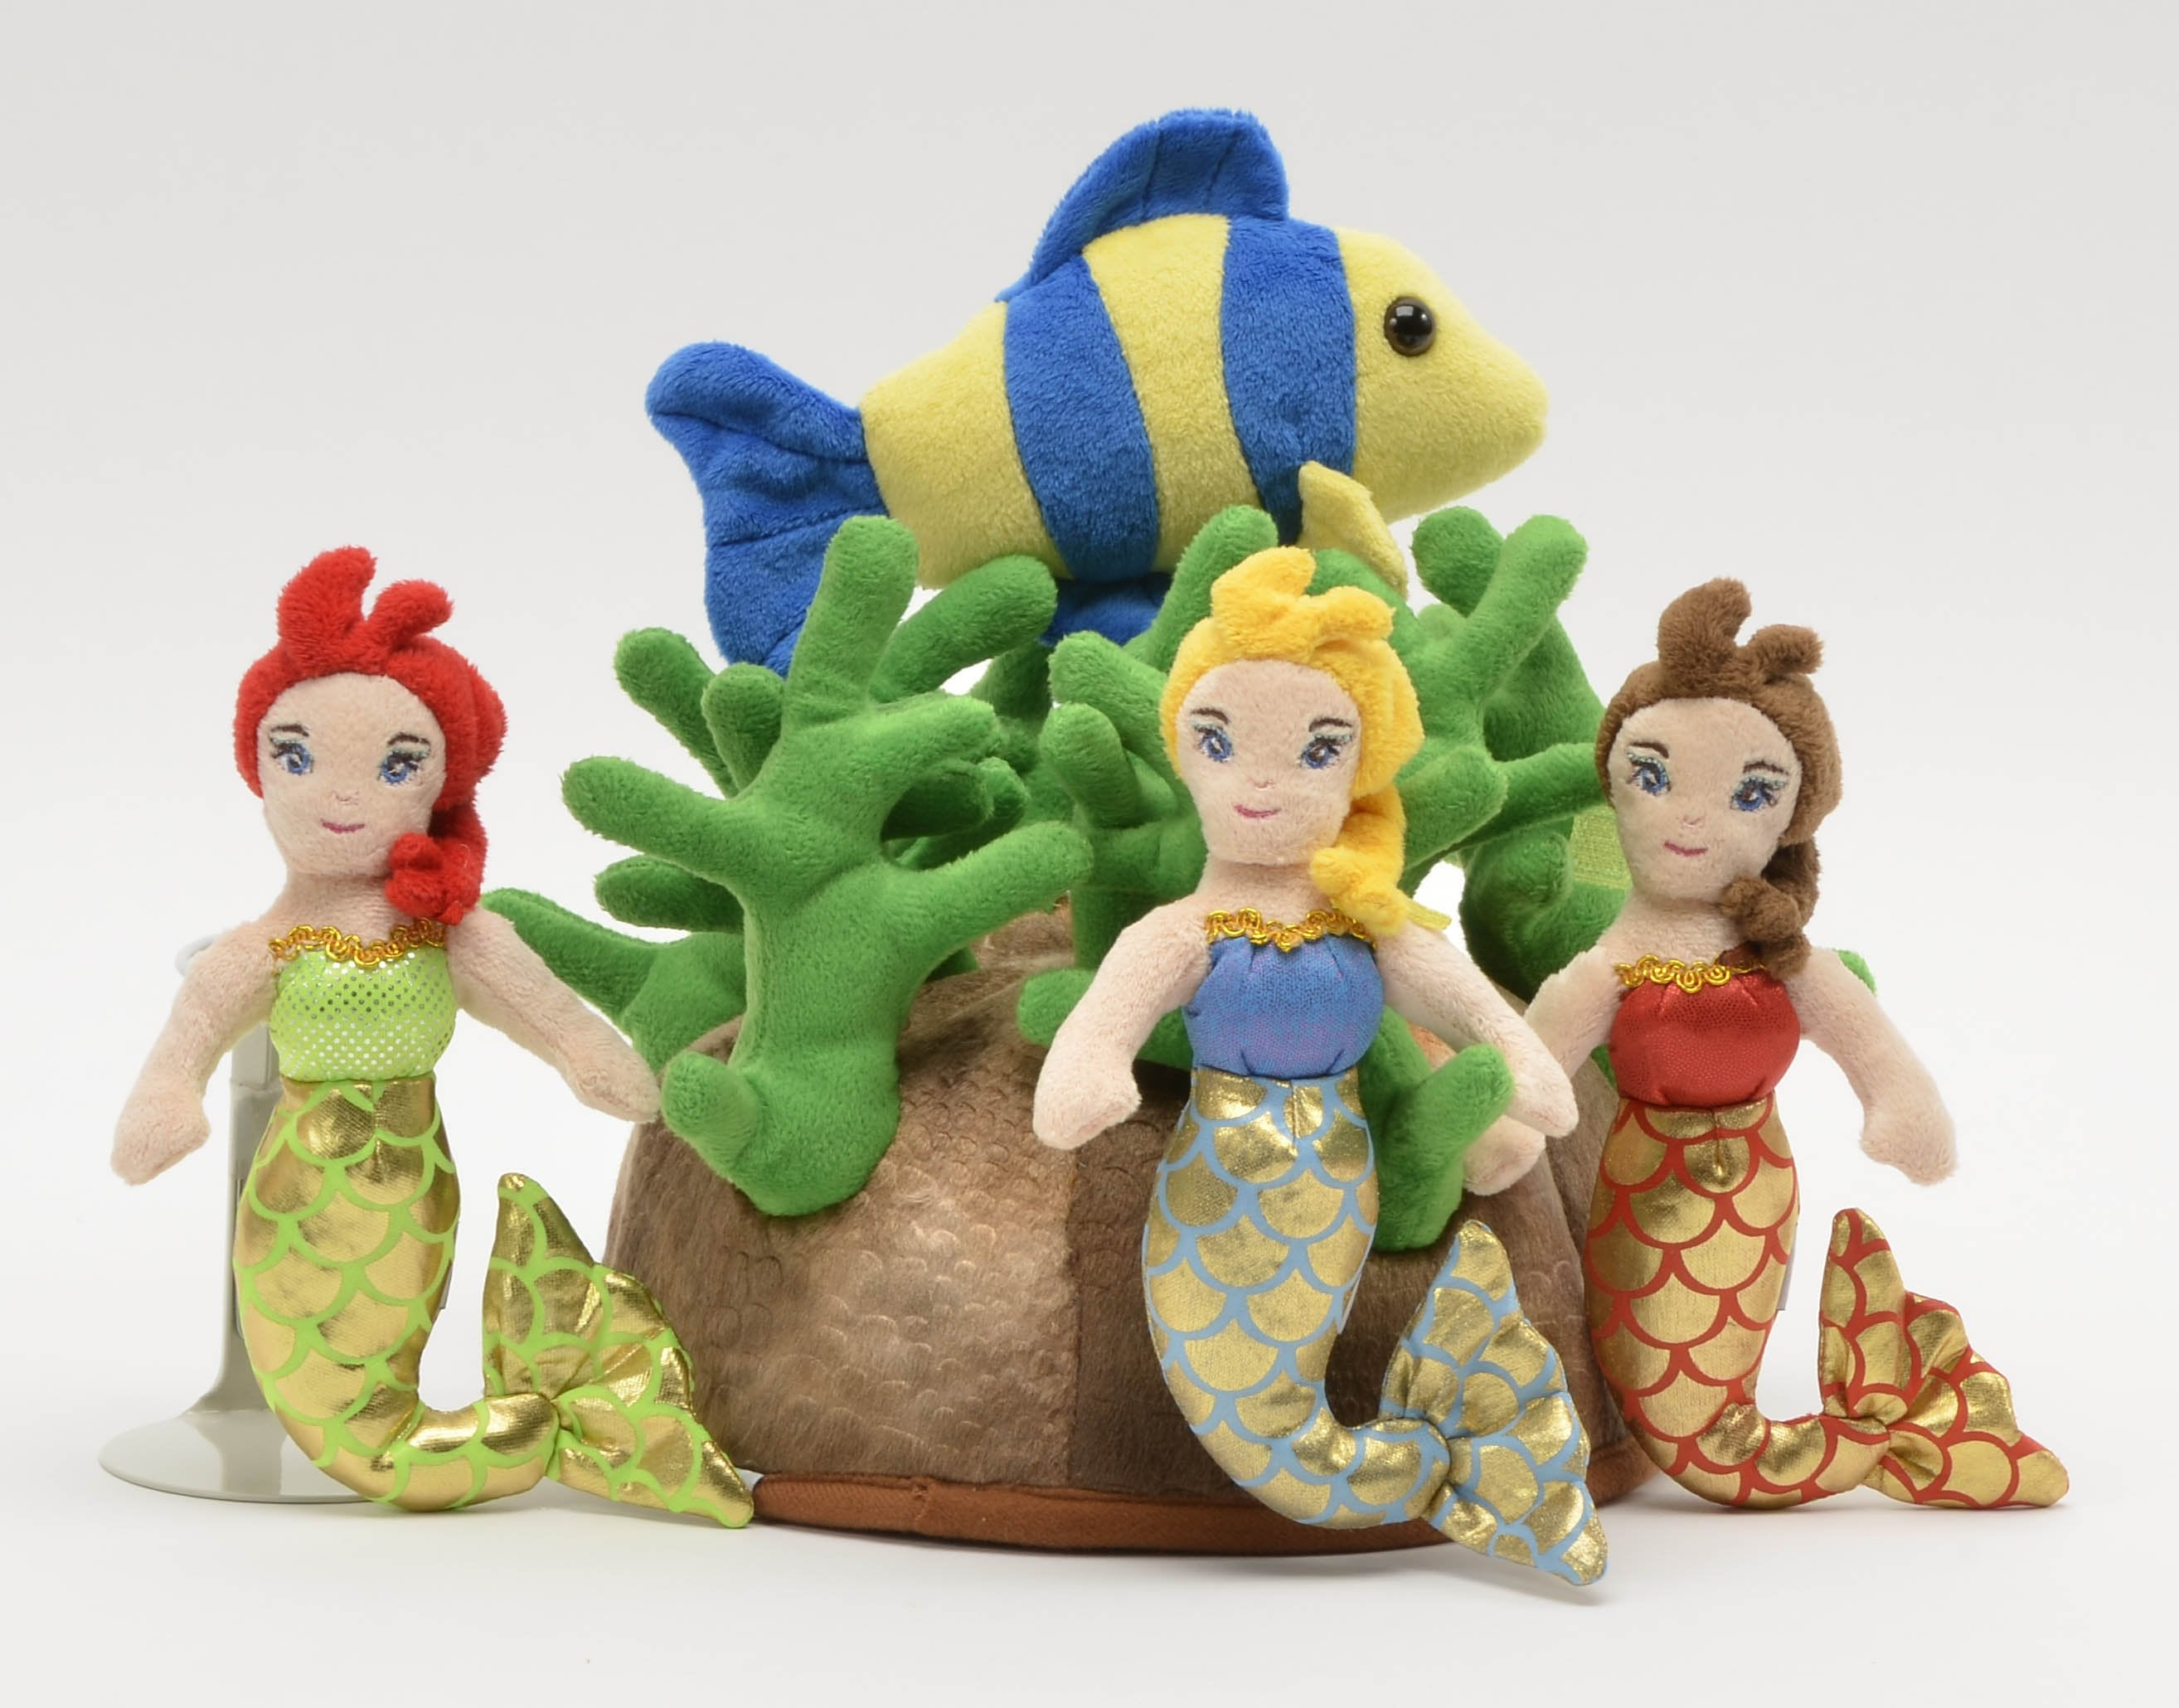 "Mermaid House - 12"" Reef Shaped Carrying Case w/3 Plush Mermaids & 1 Fish by Unipak Designs"